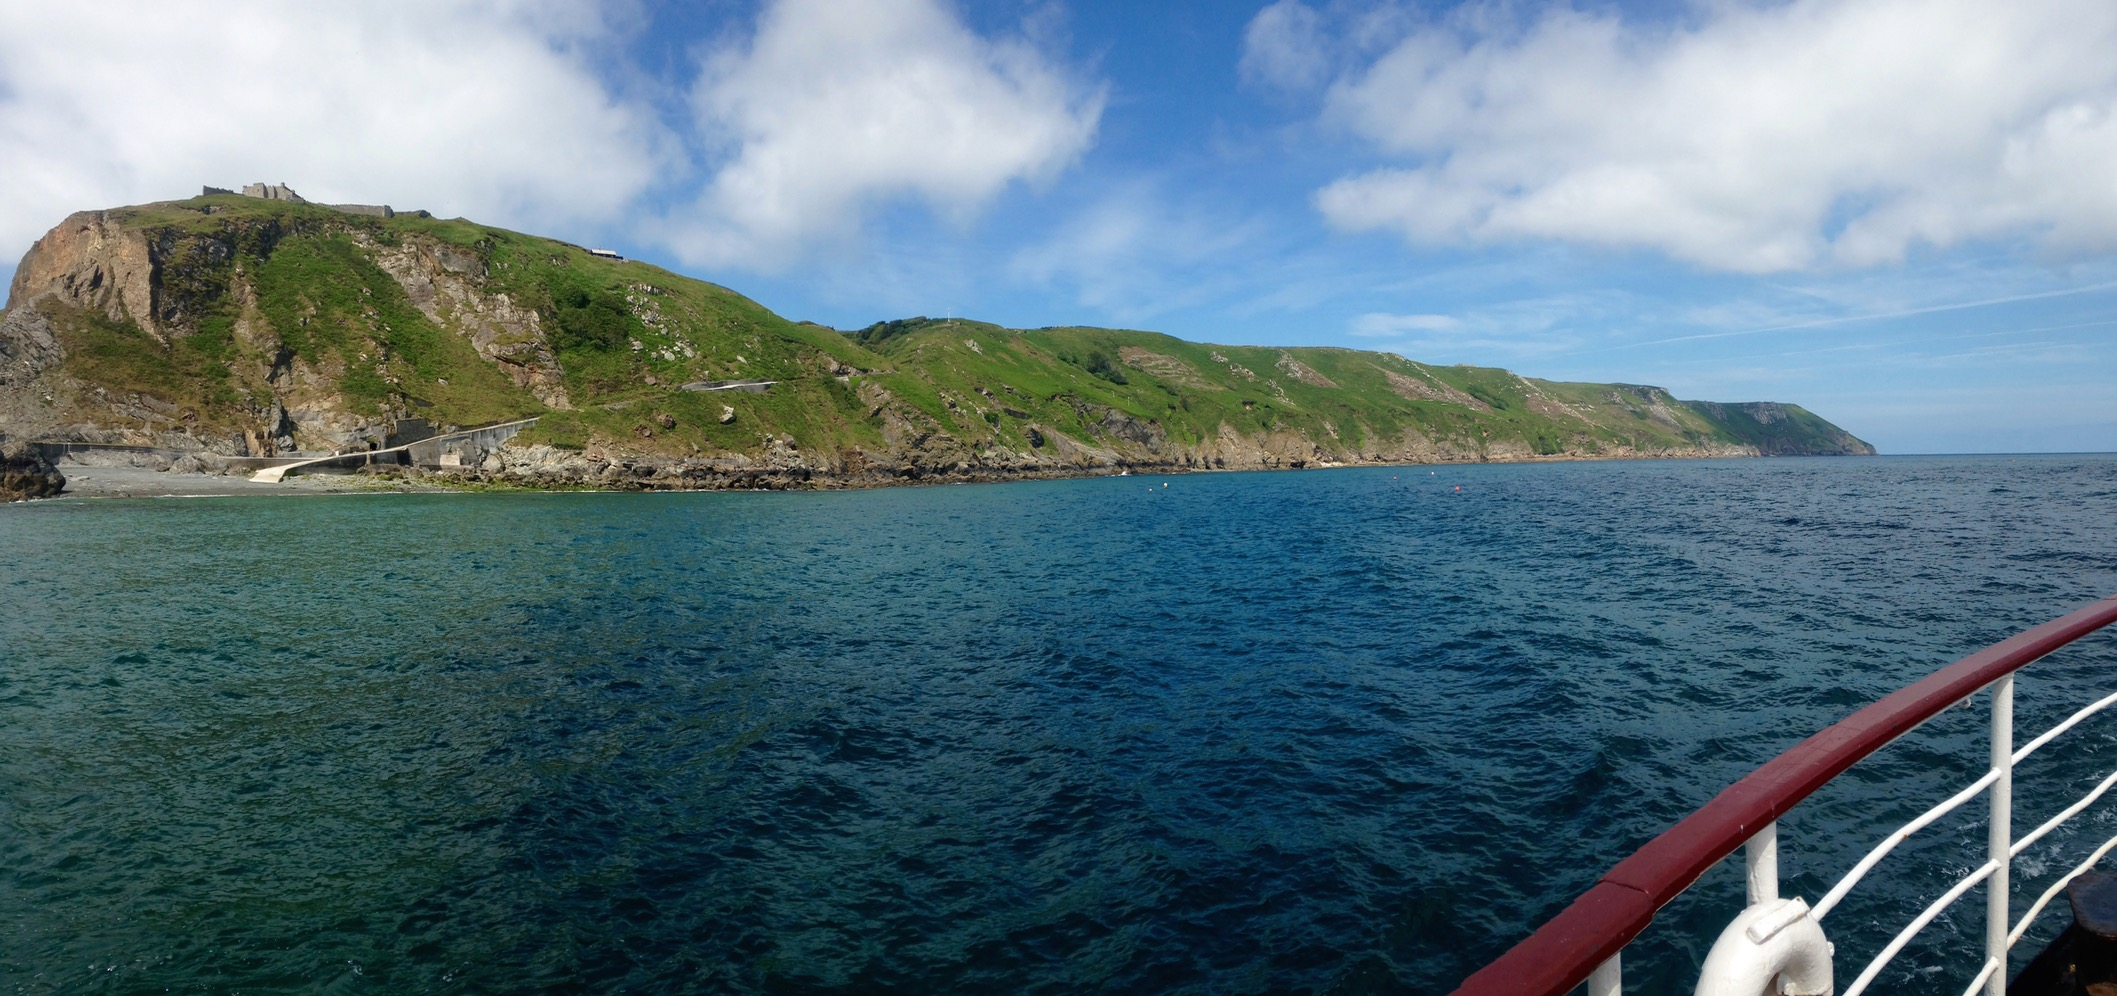 Our first sight of Lundy!